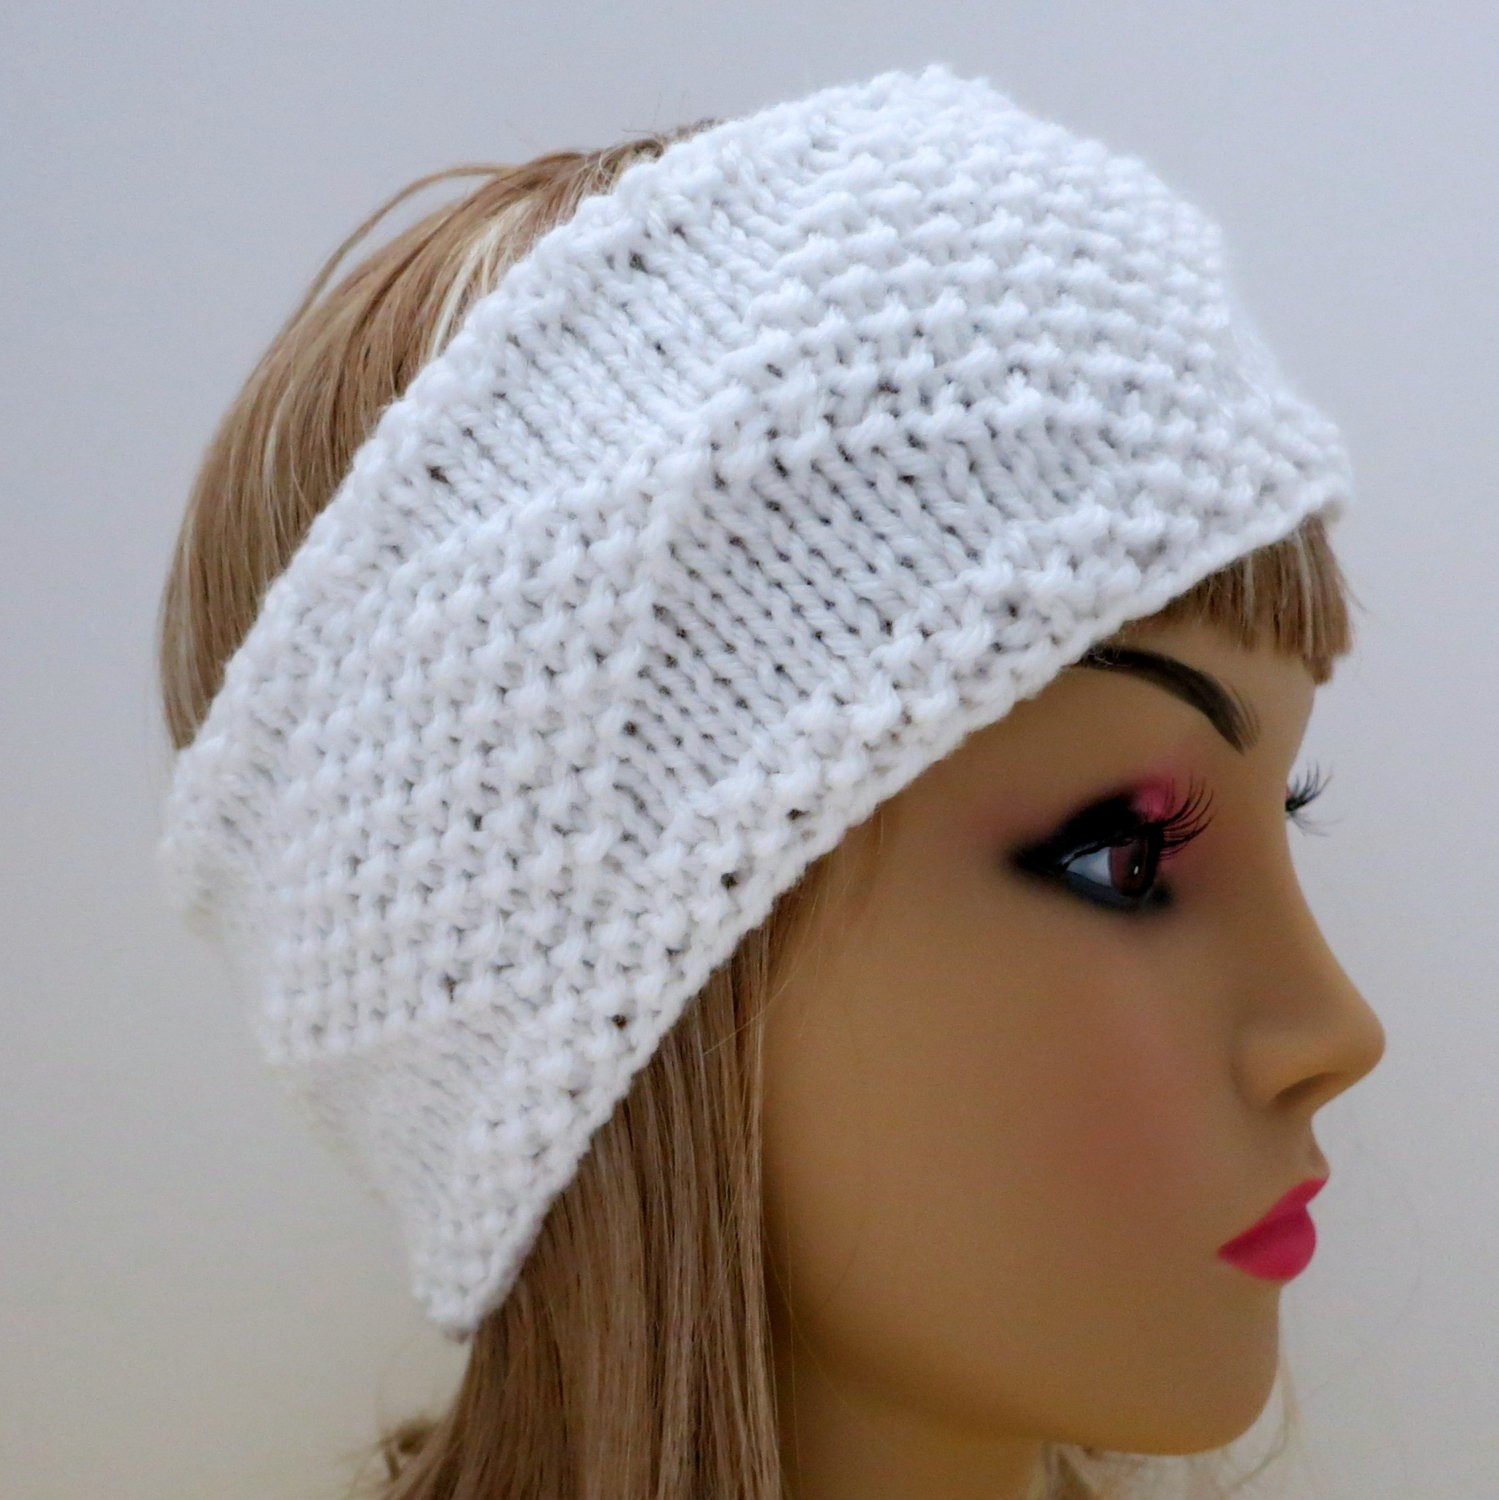 Knitted Ear Warmer Pattern : Knit Ear Warmer Pattern A Knitting Blog